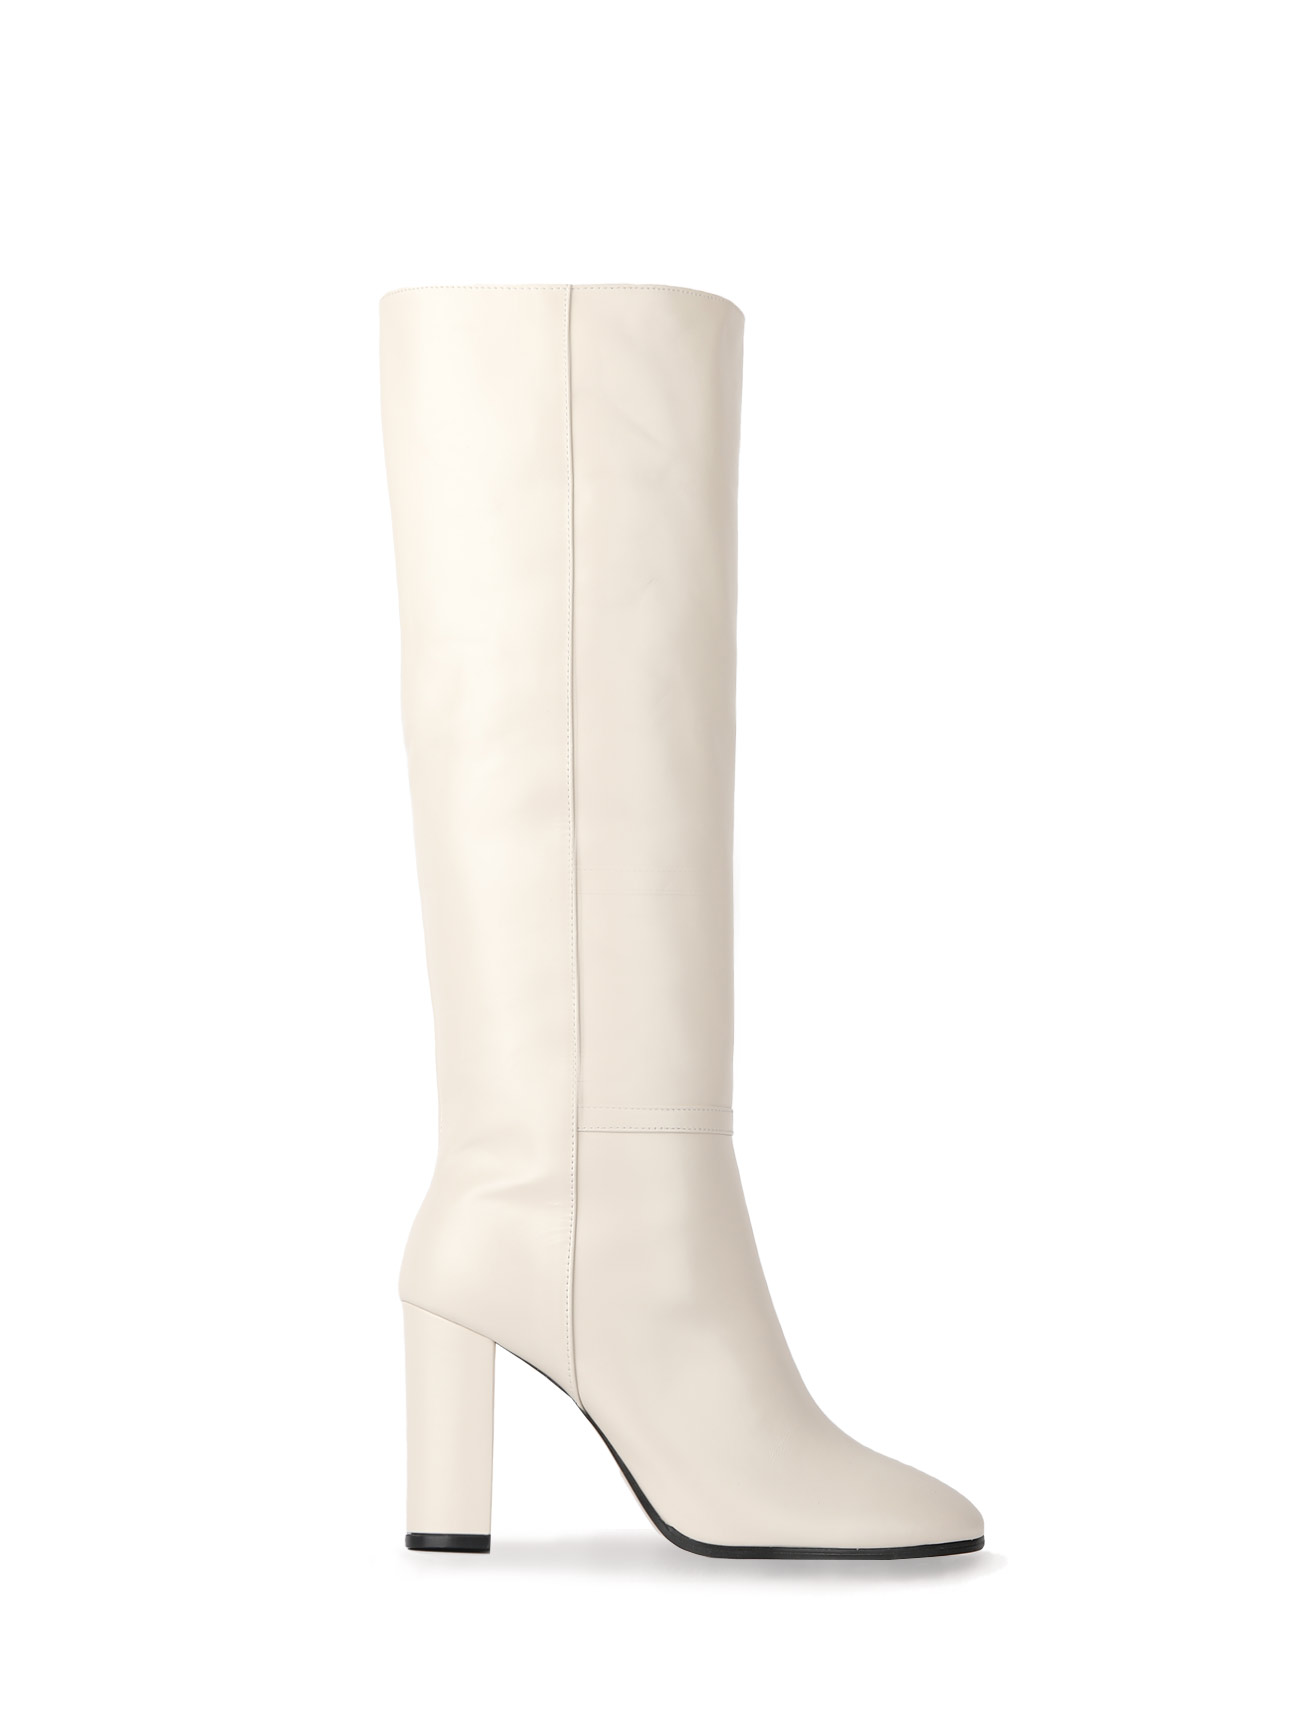 KATE LEATHER KNEE BOOTS (7cm, 9cm) - IVORY